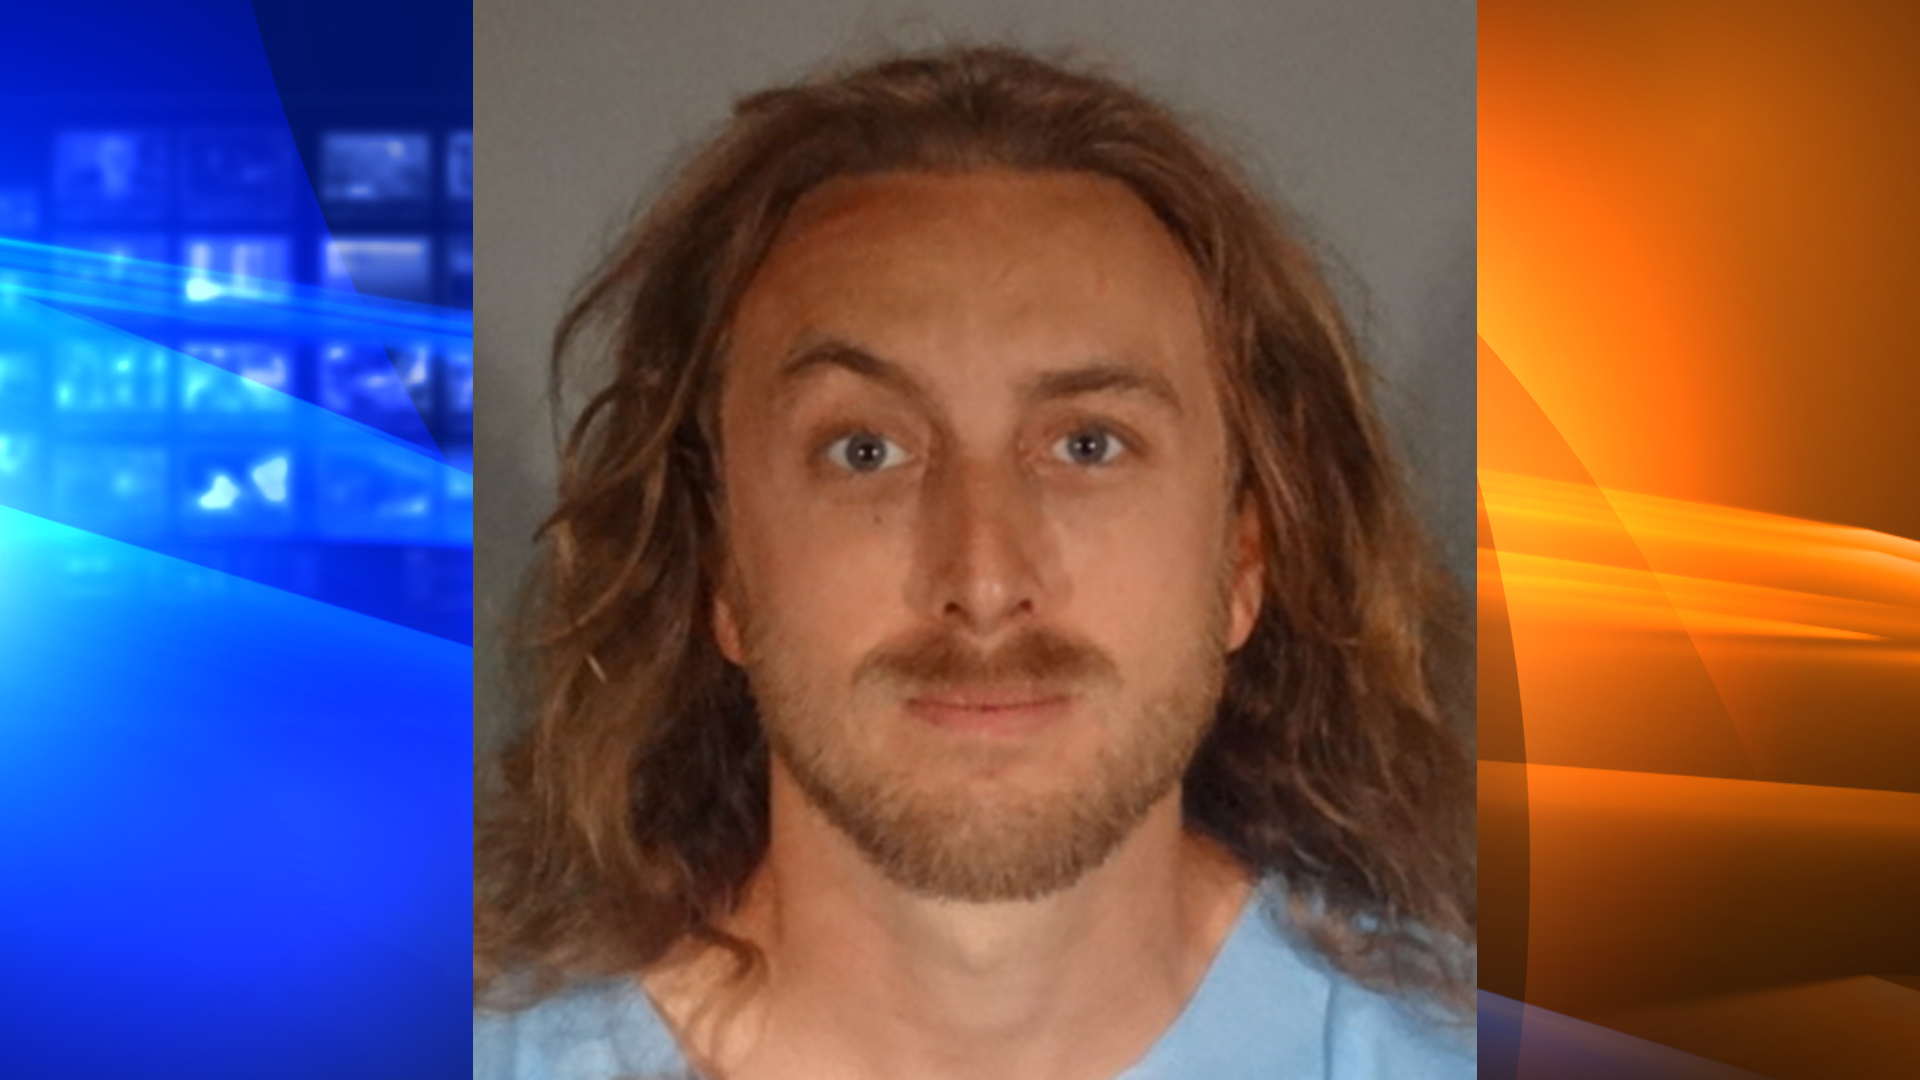 David Nicholas Dempsey appears in a booking photo released by Santa Monica police on Oct. 21, 2019.